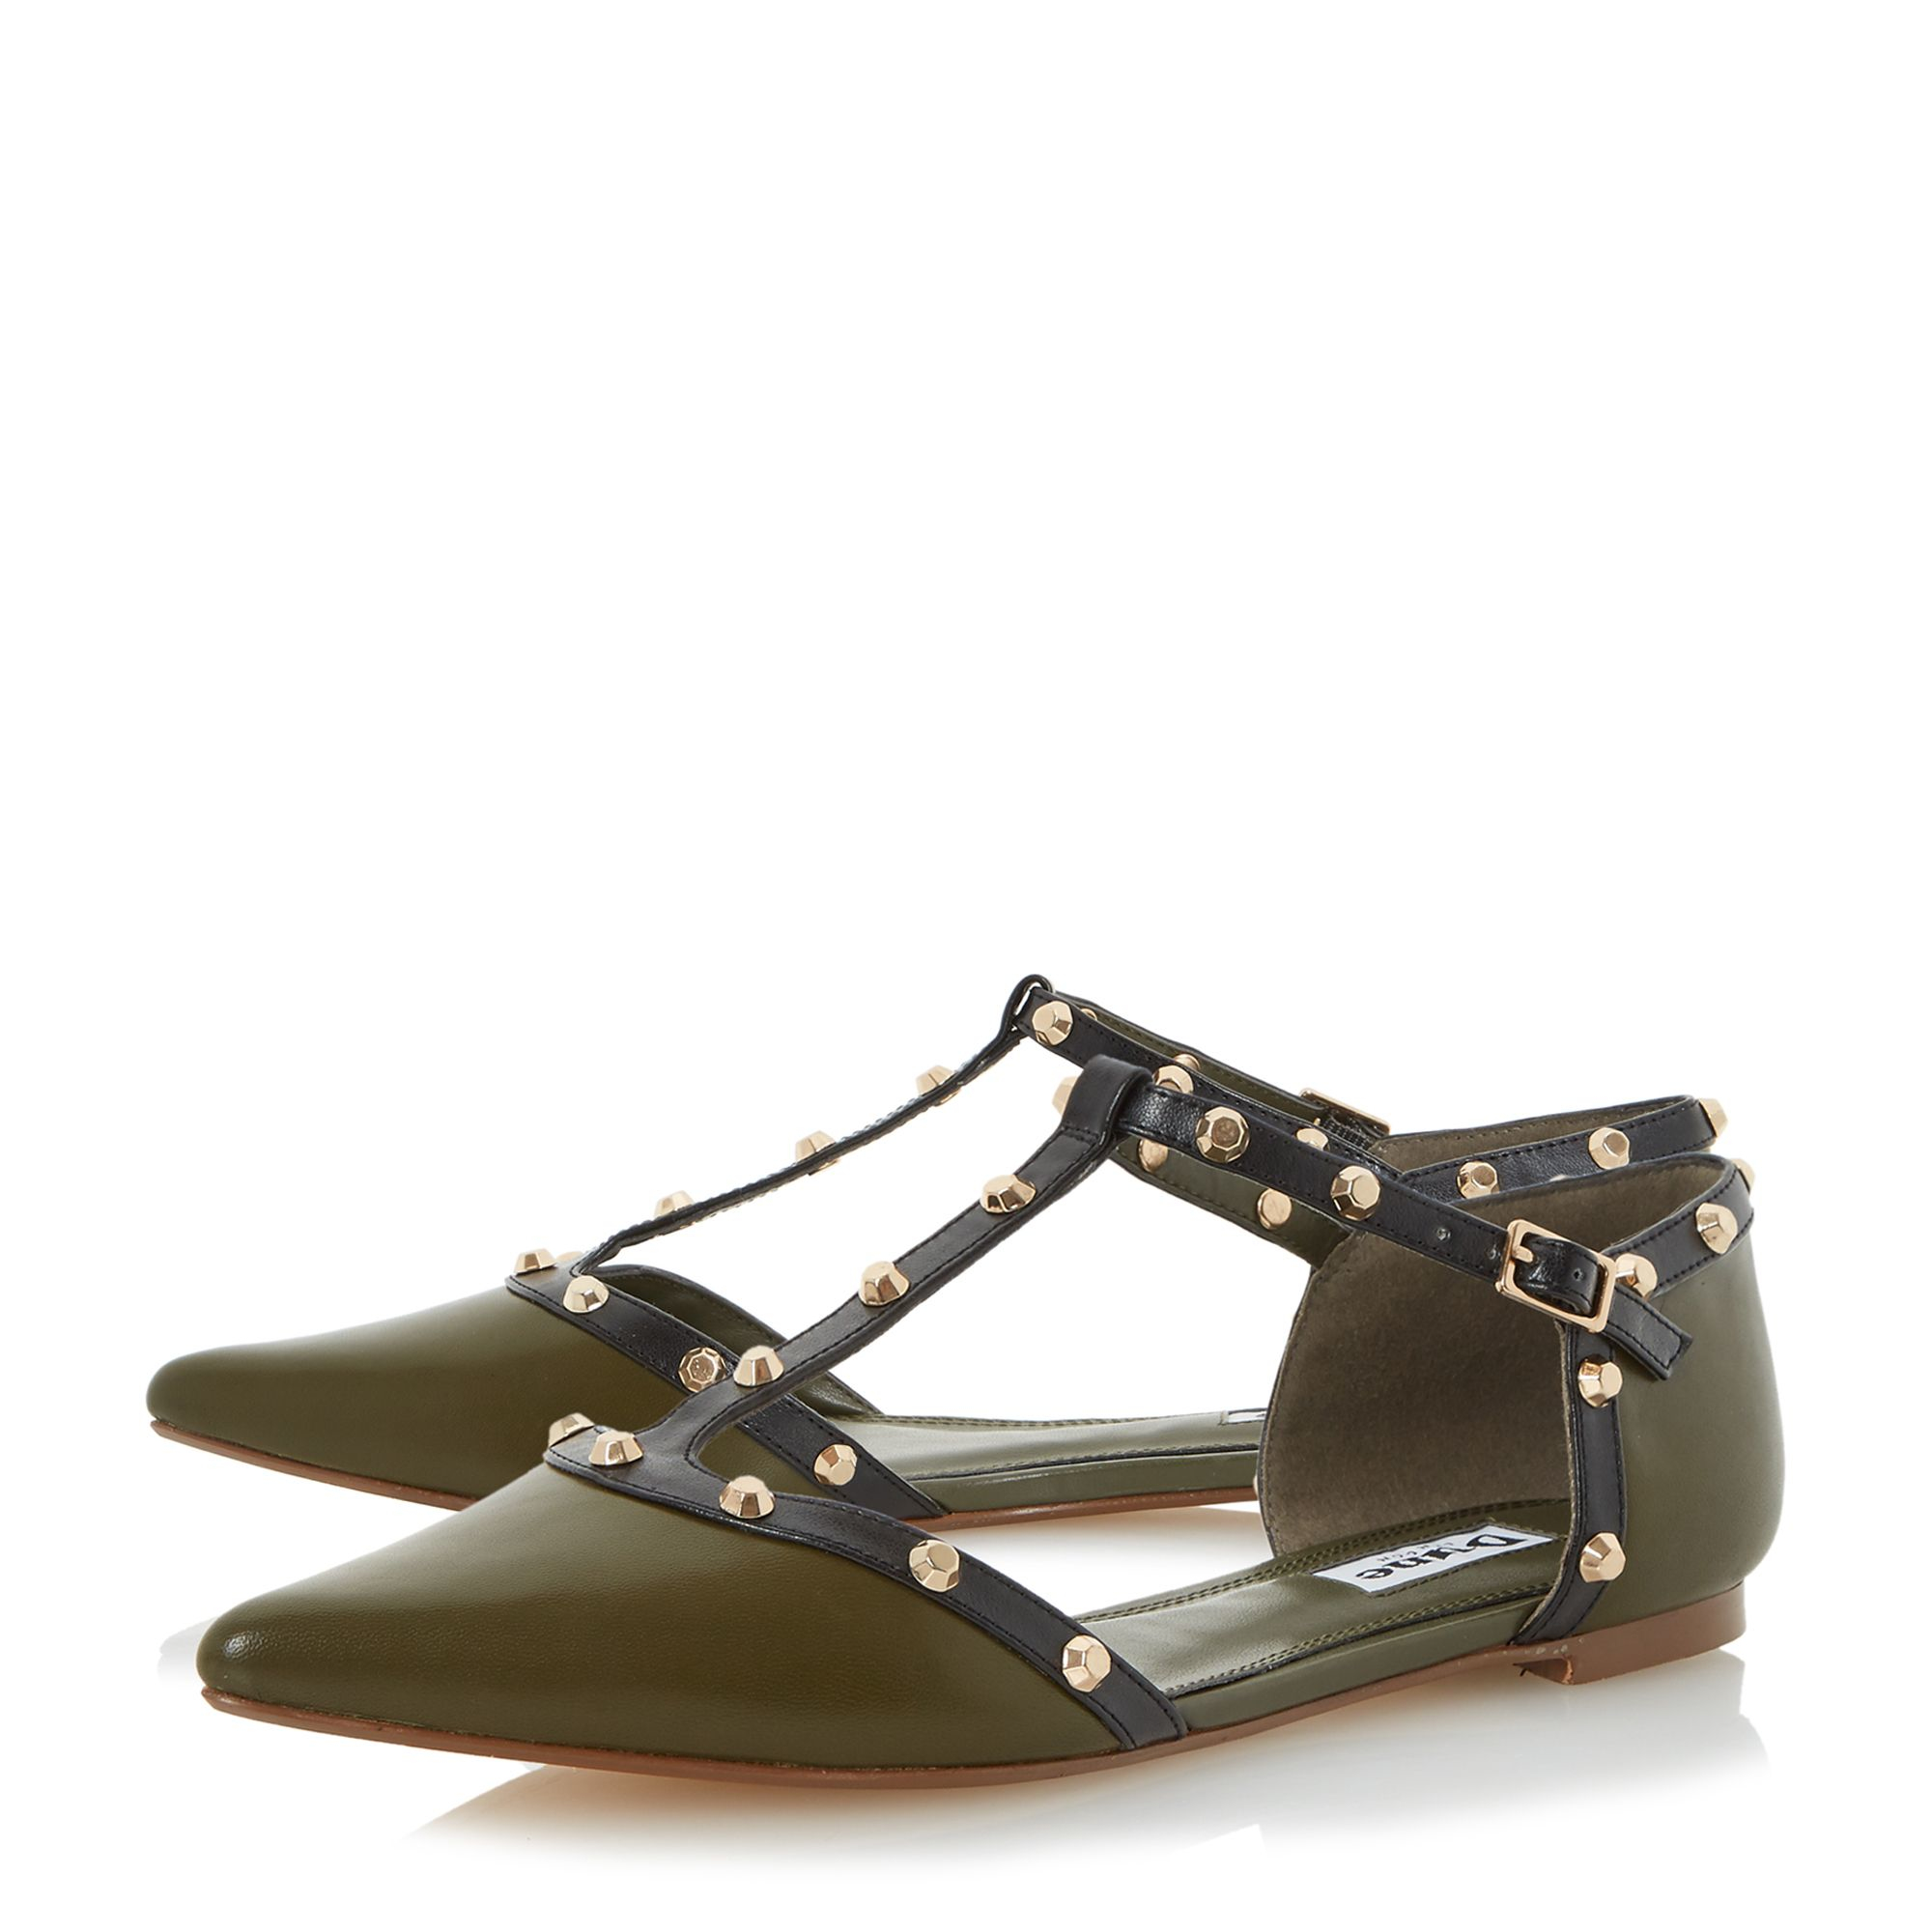 Lyst - Dune Heti Stud Pointed Flat Shoes